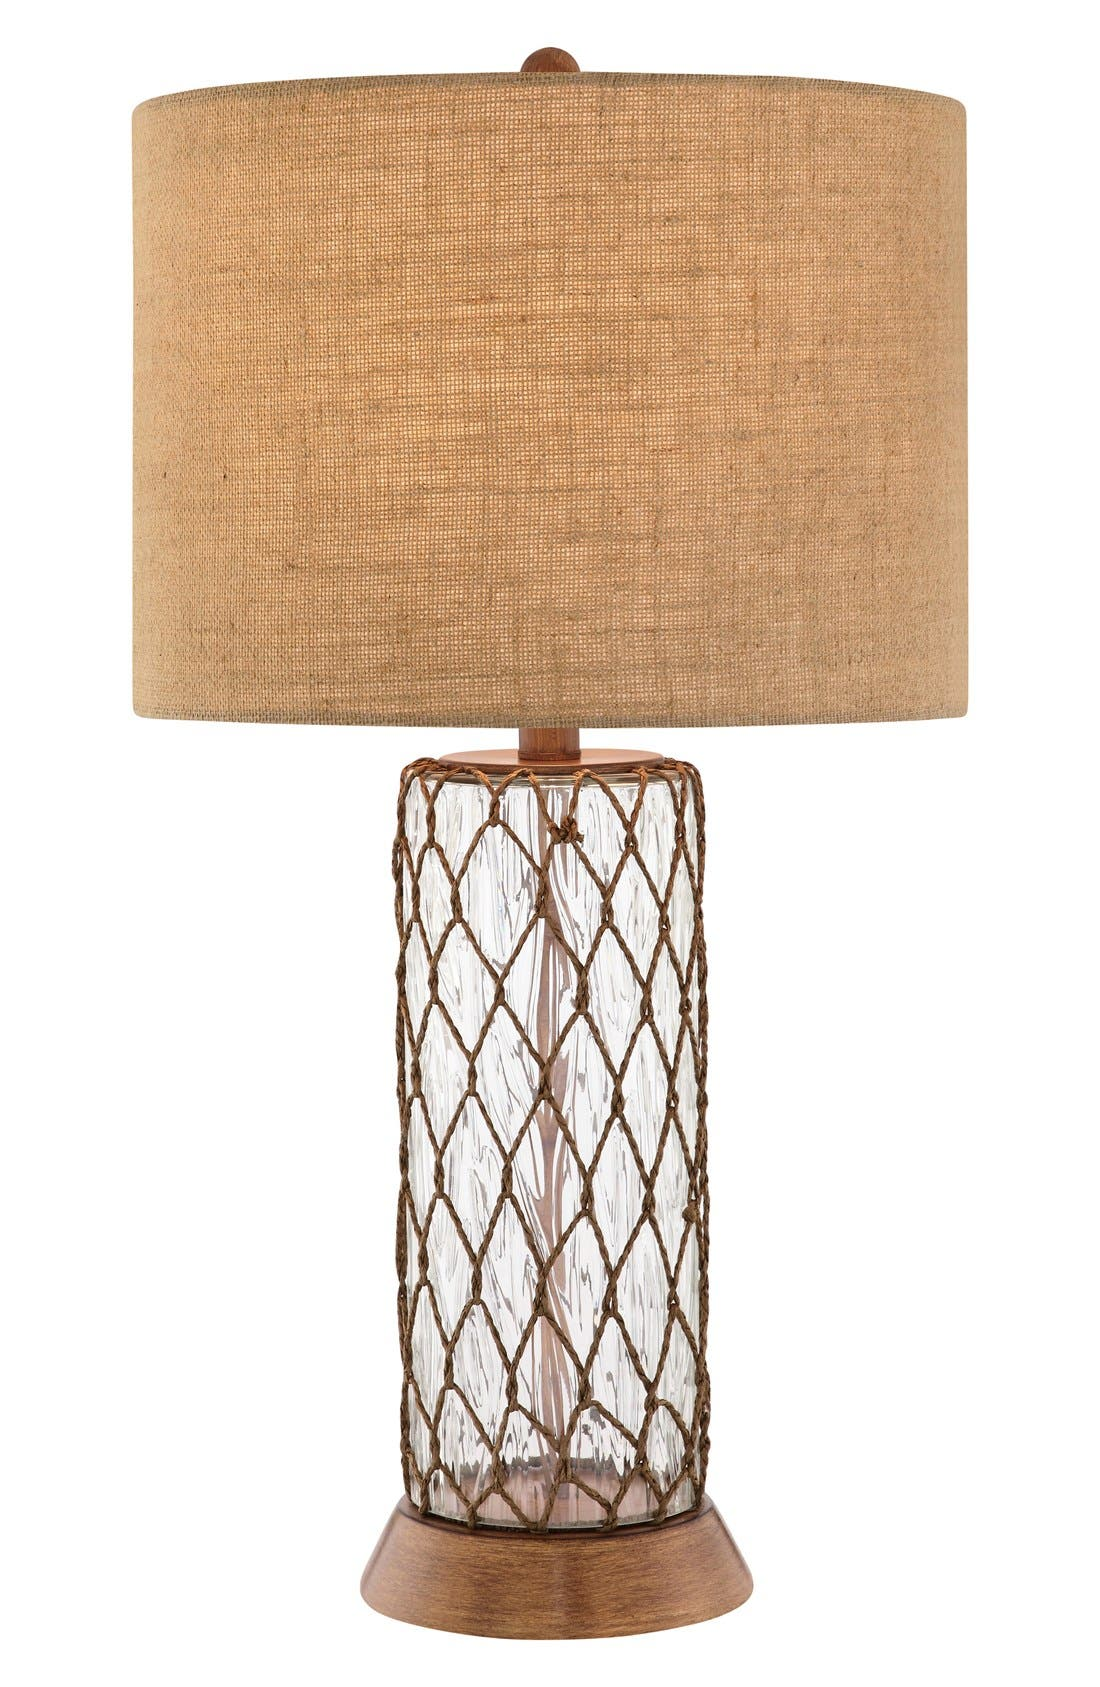 Clear Glass Table Lamp,                         Main,                         color, Clear Glass/ Bronze Finish